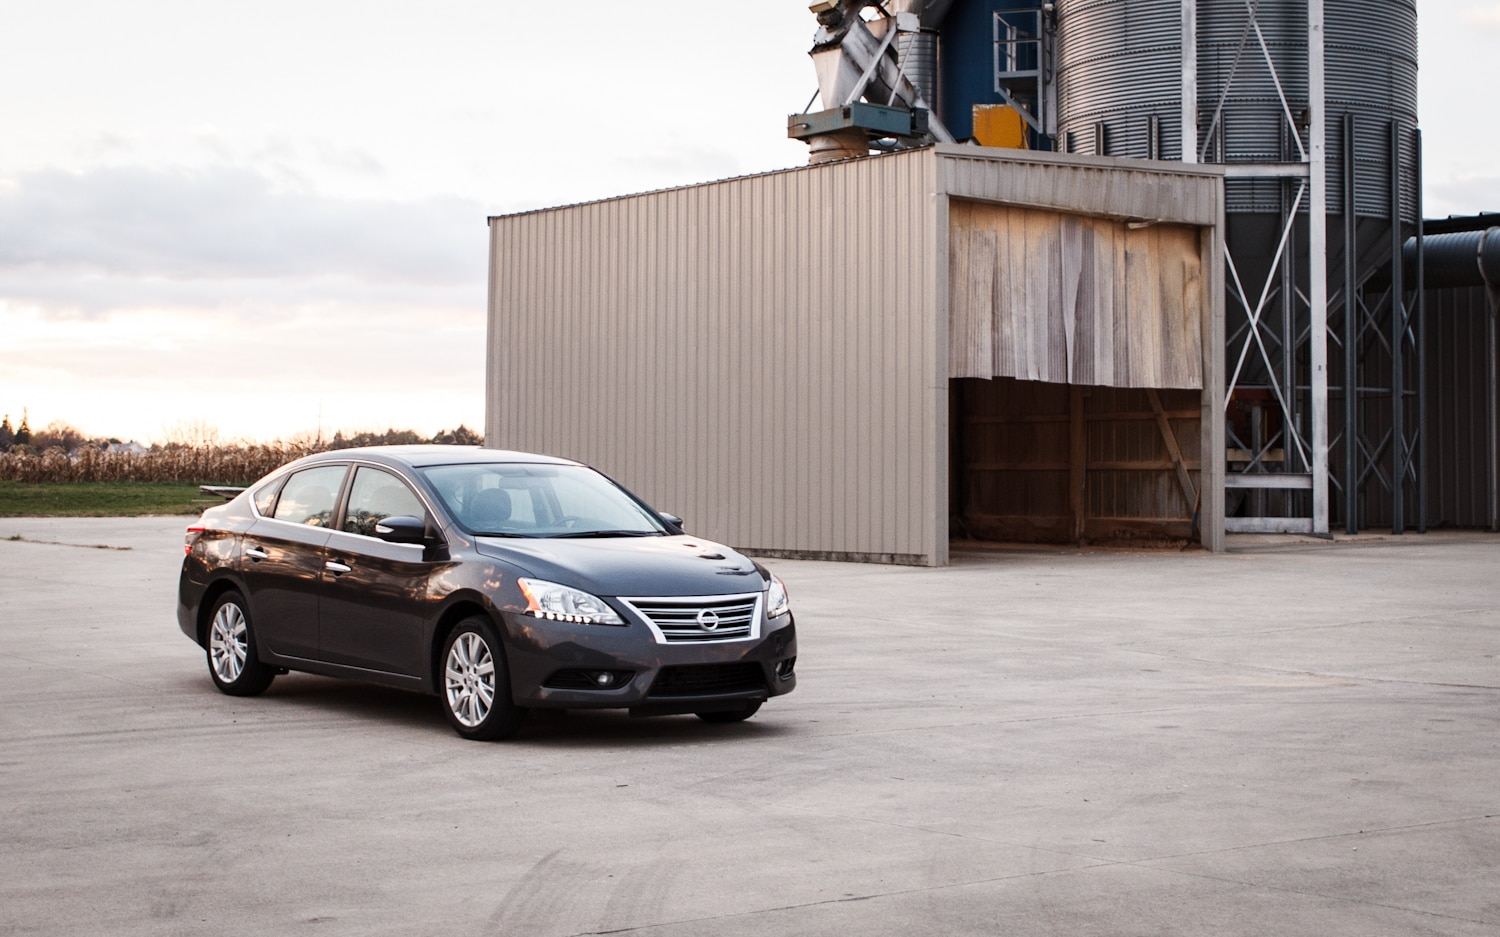 2013 Nissan Sentra SL Front Right View1